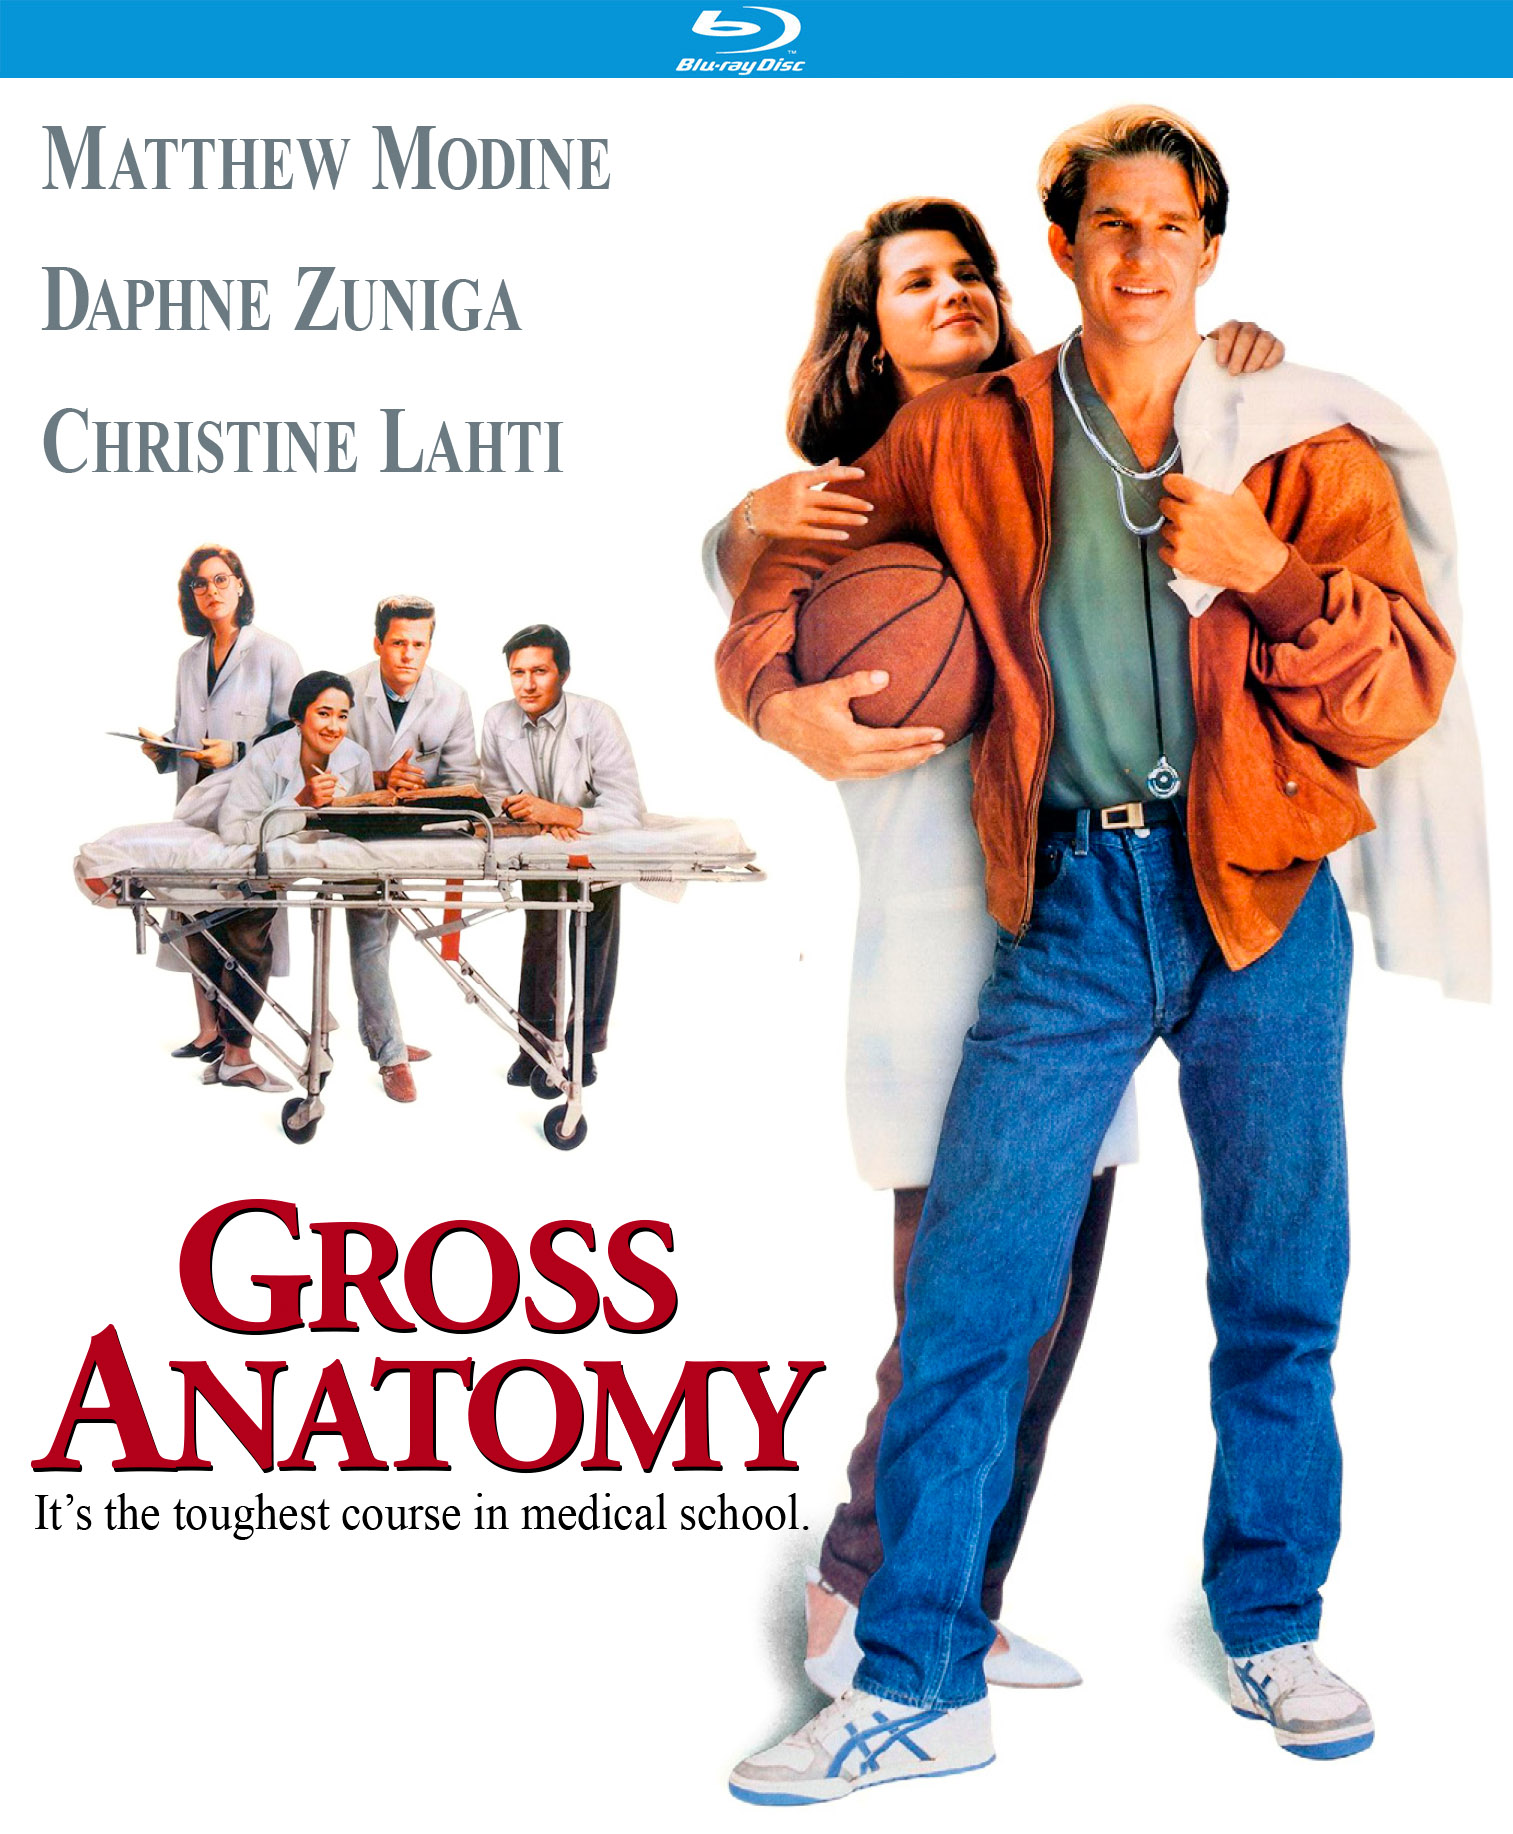 Gross Anatomy (Special Edition) (Blu-ray) - Kino Lorber Home Video